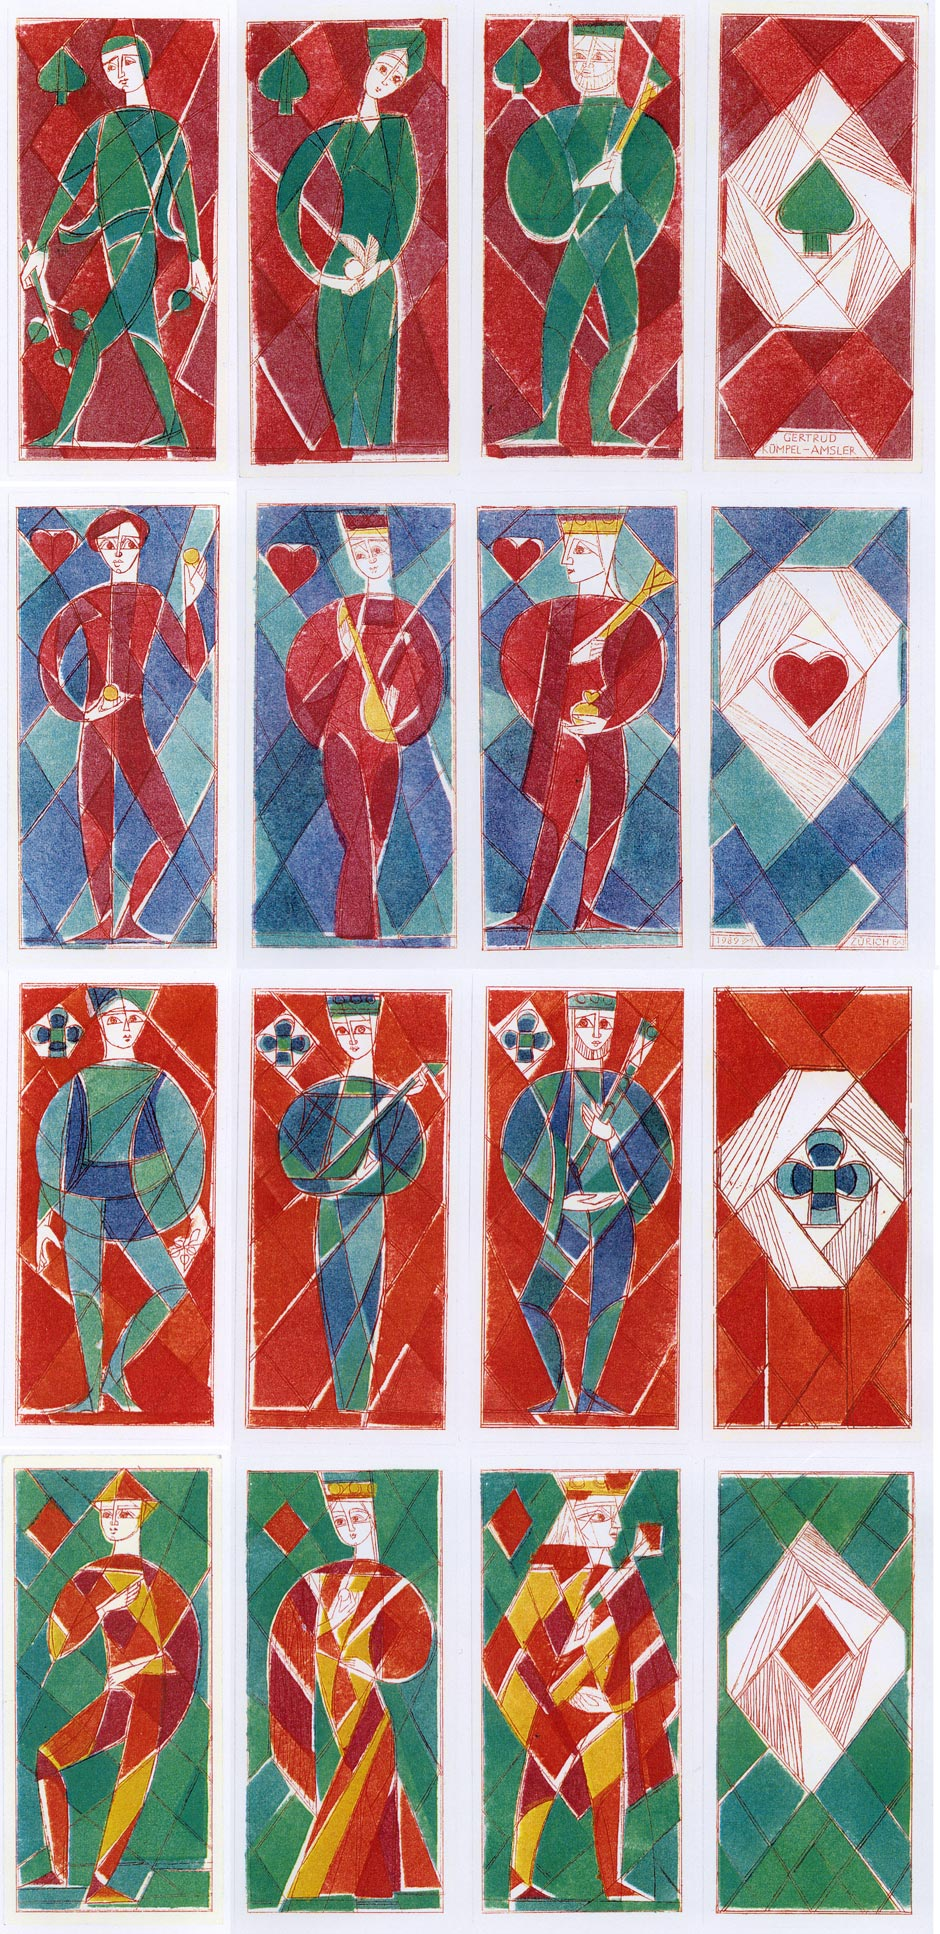 Playing cards inspired by stained glass, designed by Gertrude Kümpel, 1989